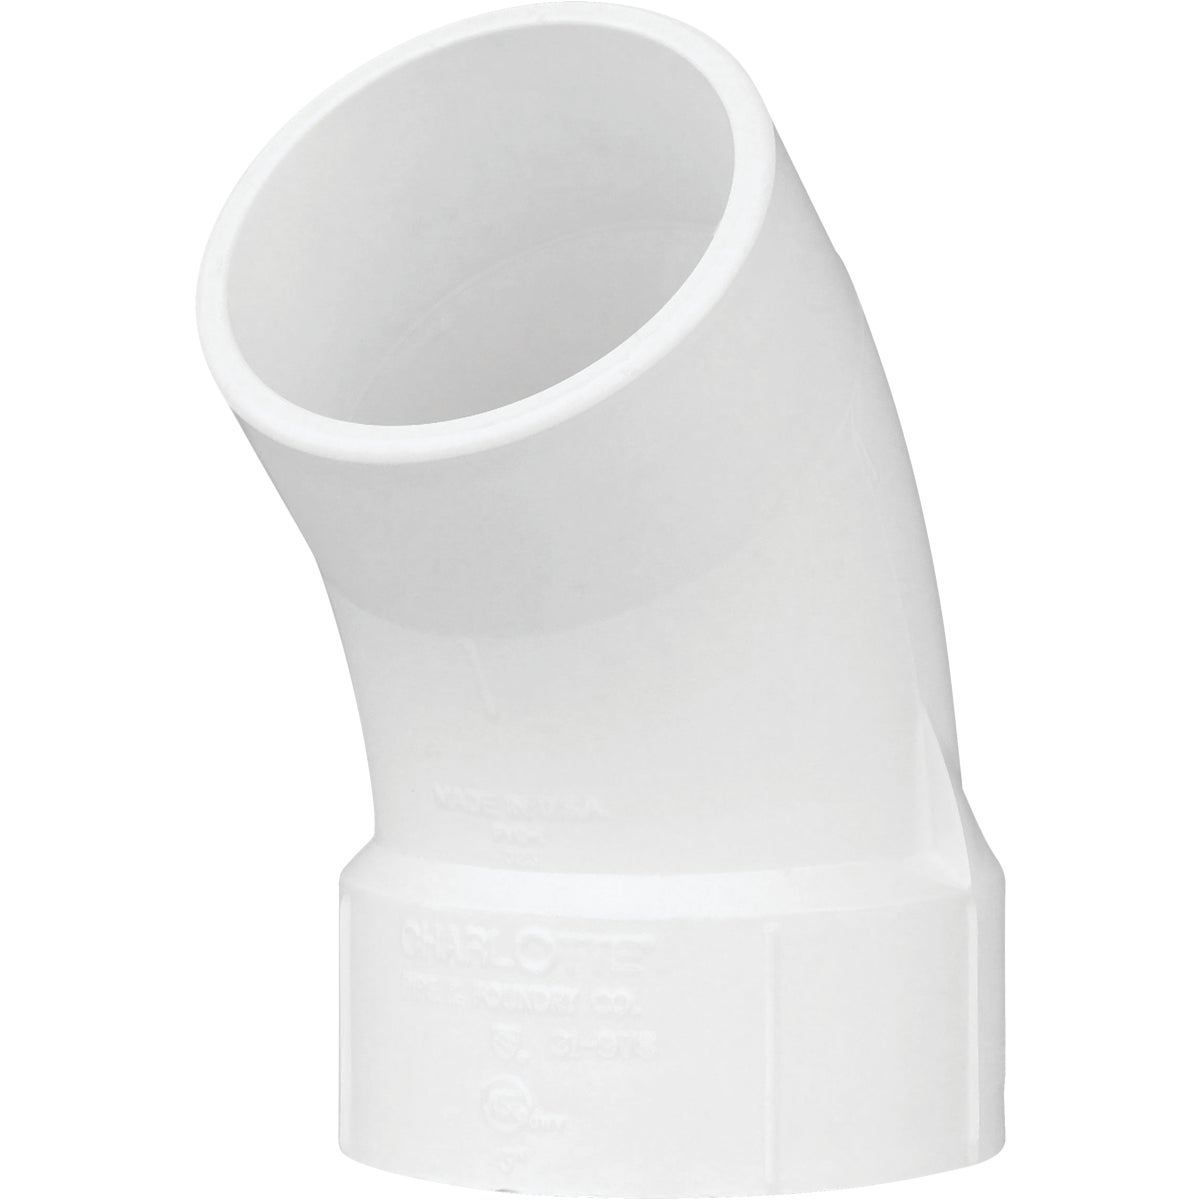 "3"" 45D DWV STREET ELBOW - 72730 by Genova Inc  Pvc Dwv"